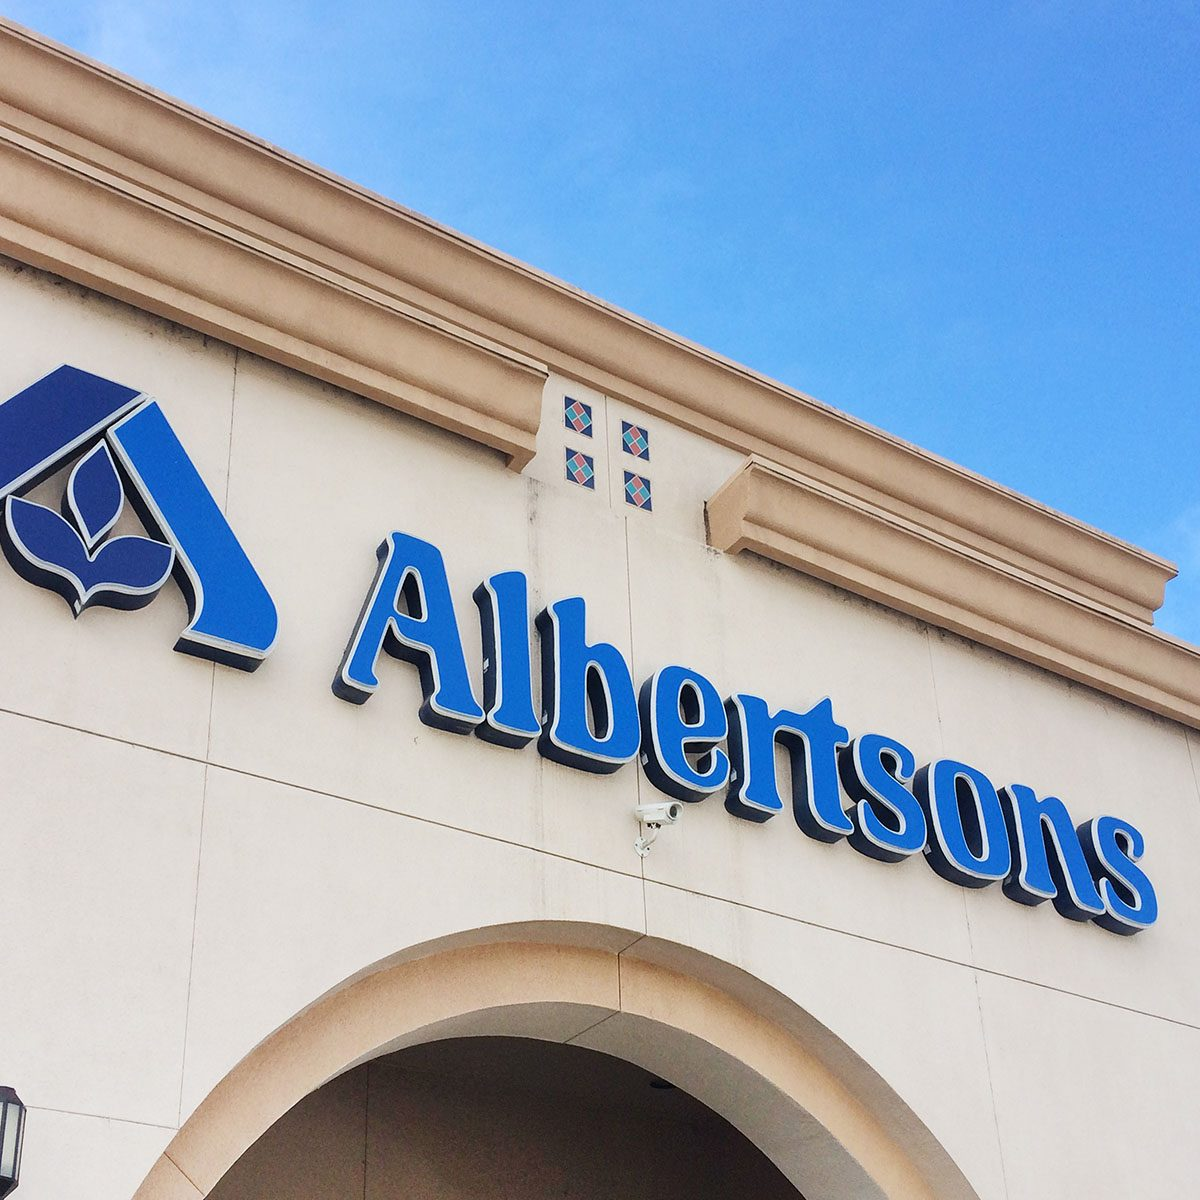 Albertsons store in Buellton, California